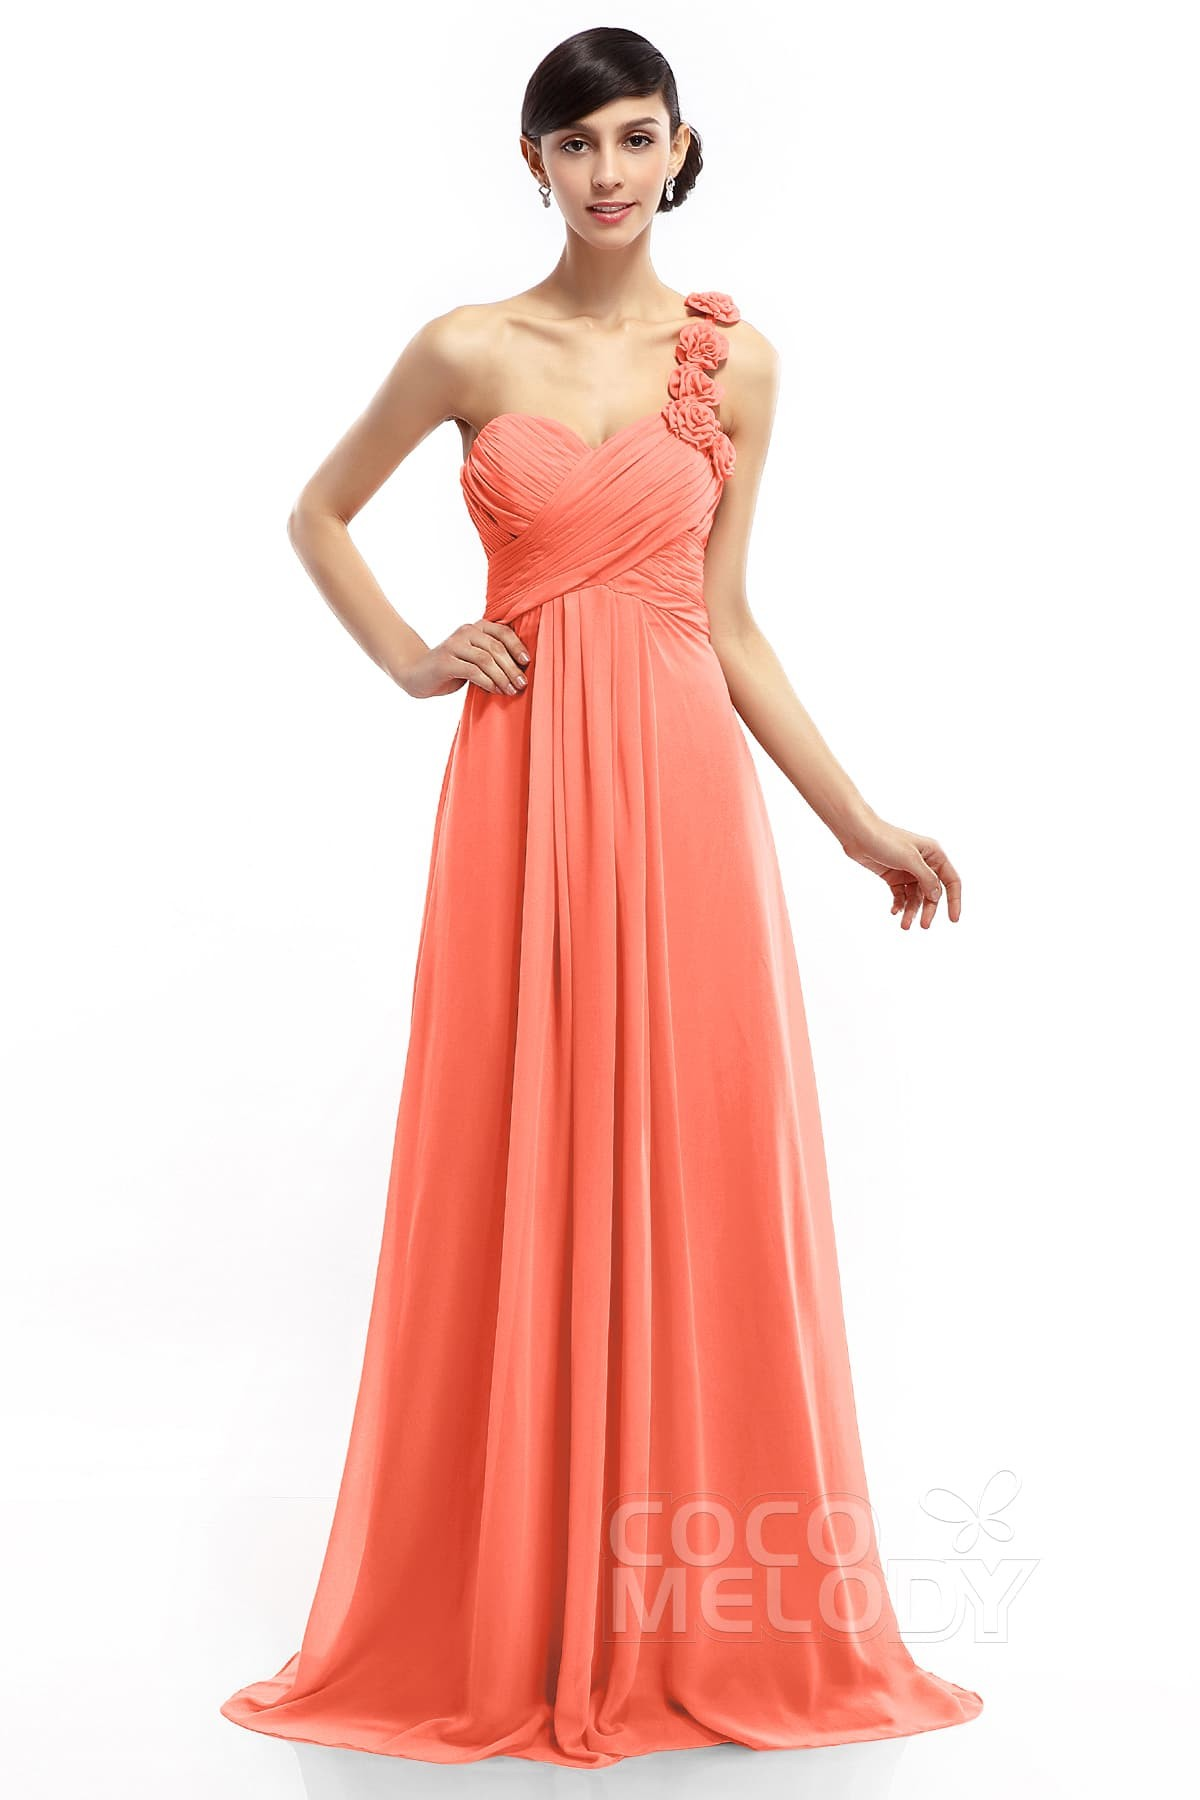 Sheath-Column One Shoulder Floor Length Dress COLT14017 | Cocomelody